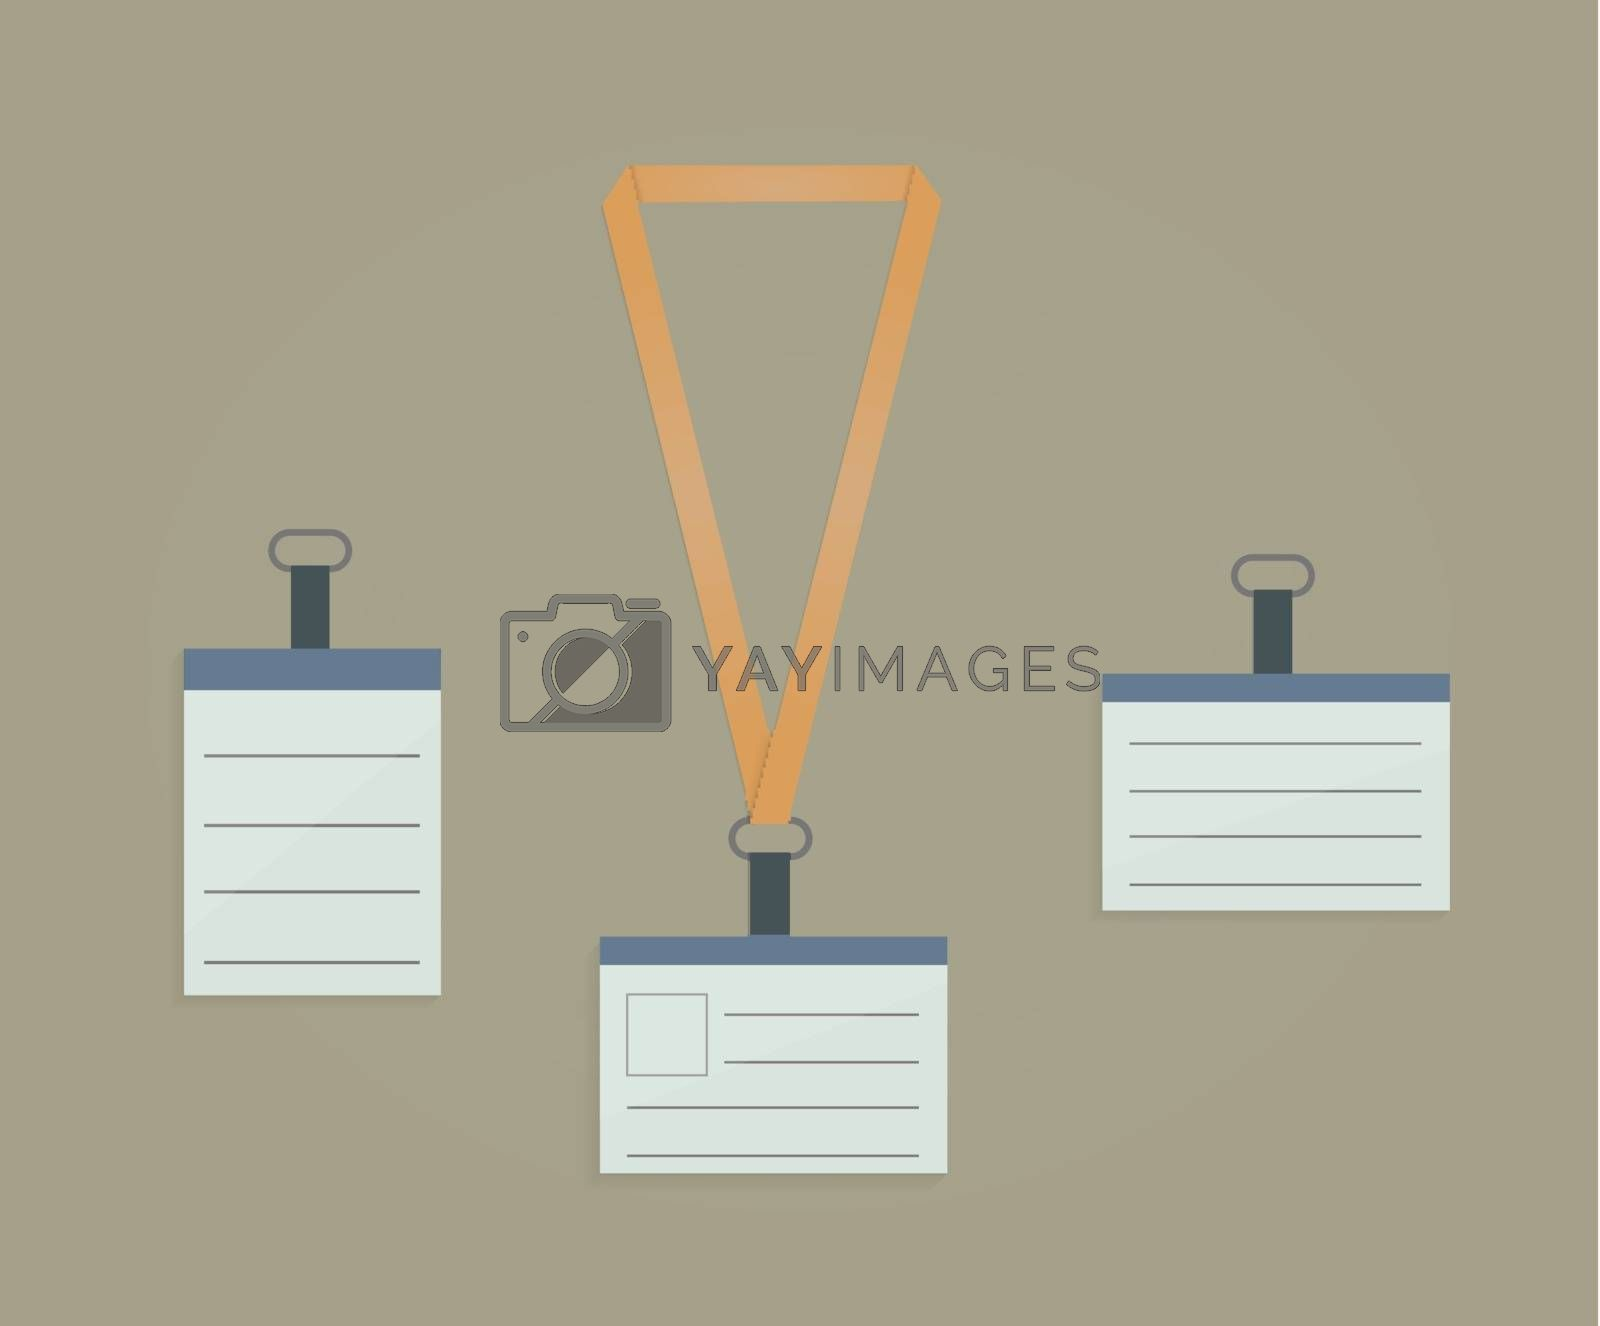 Retractor, lanyard and badge for business presentation